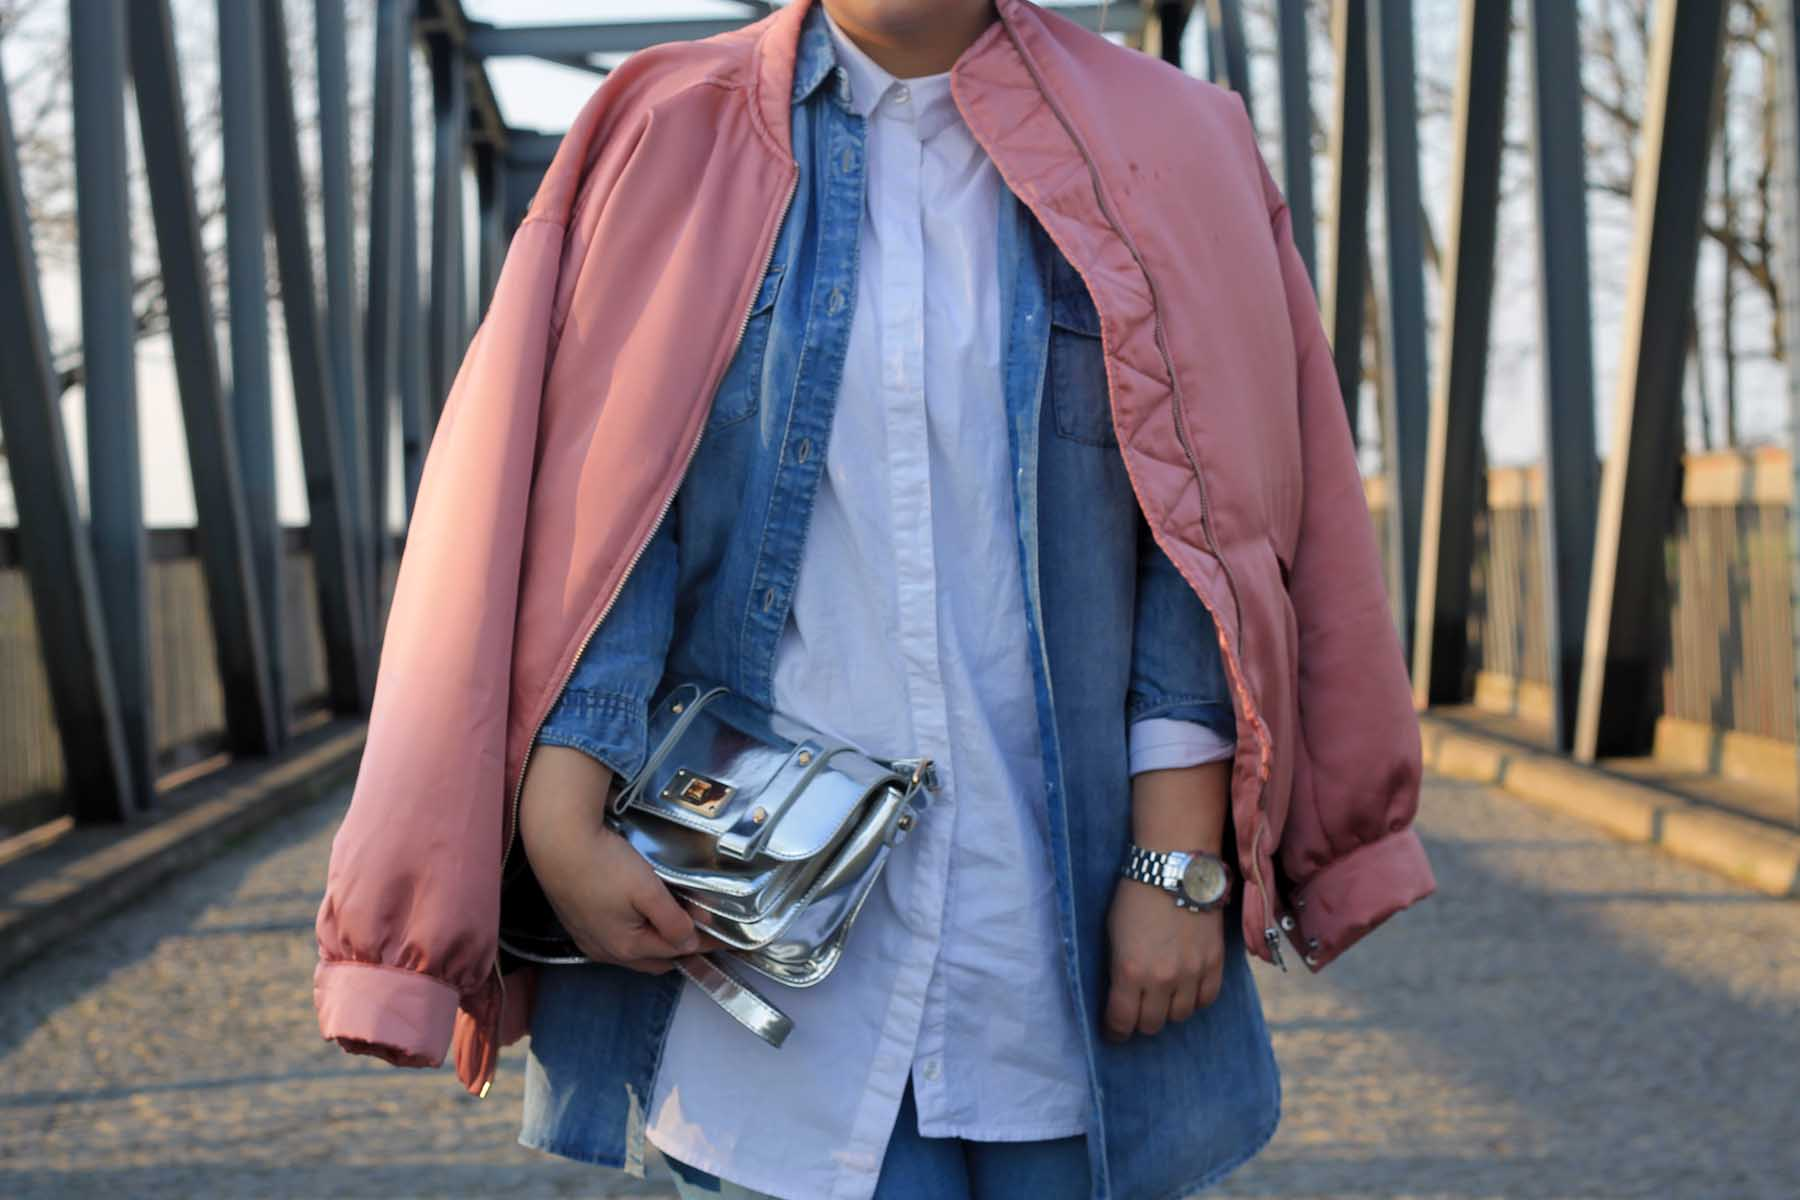 modeblog-fashionblog-bomberjacke-trend-pink-outfit